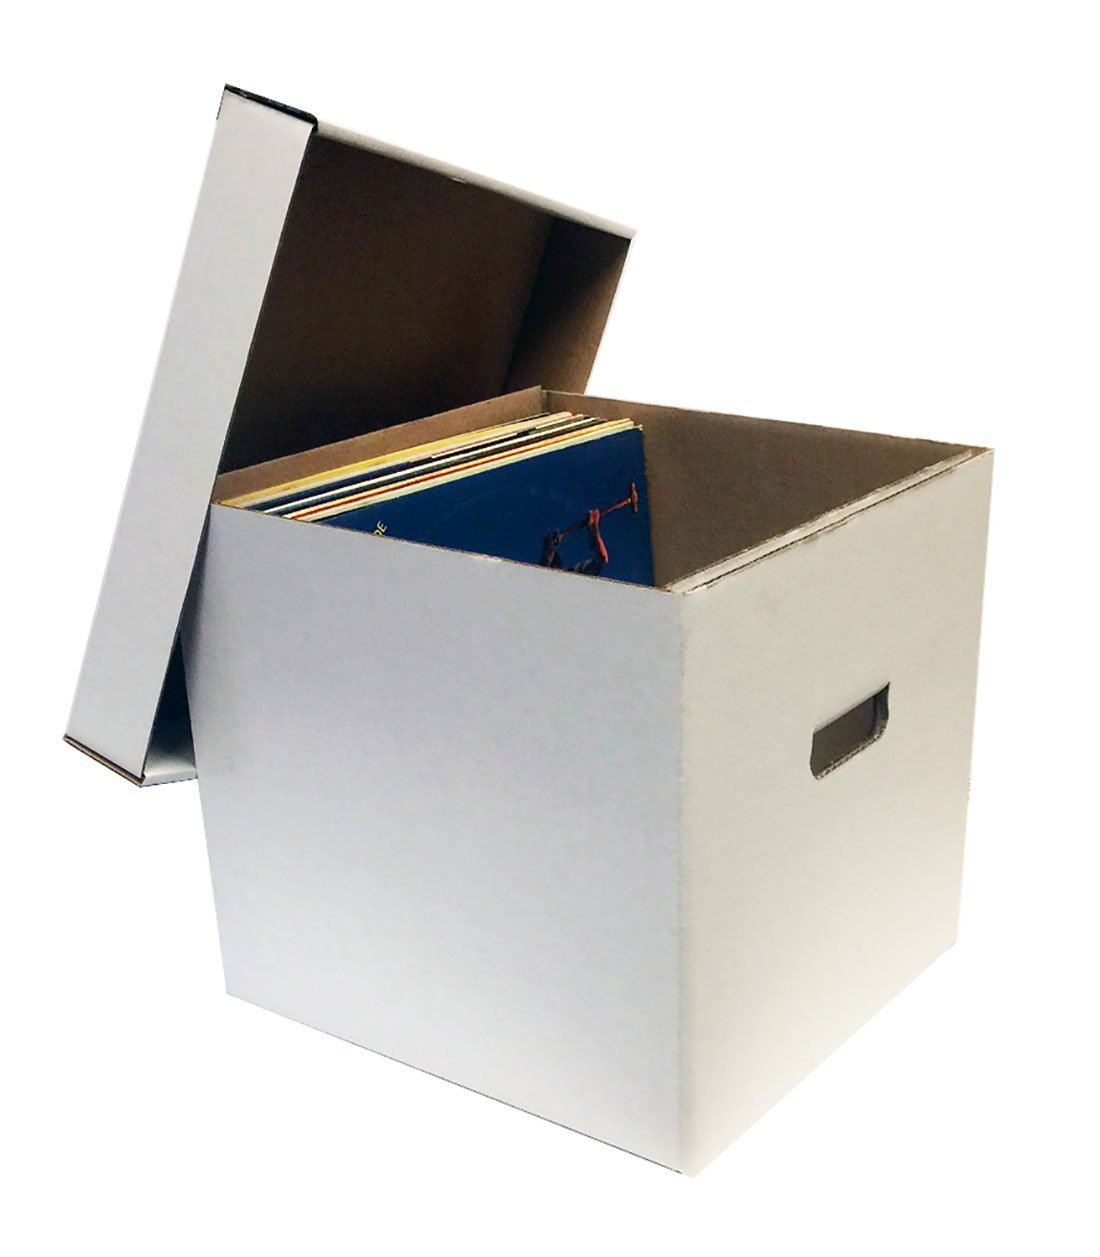 Max Protection (1) 12'' Record Album Storage Box with Removable Lid - Holds Up to 65 Vinyl Records